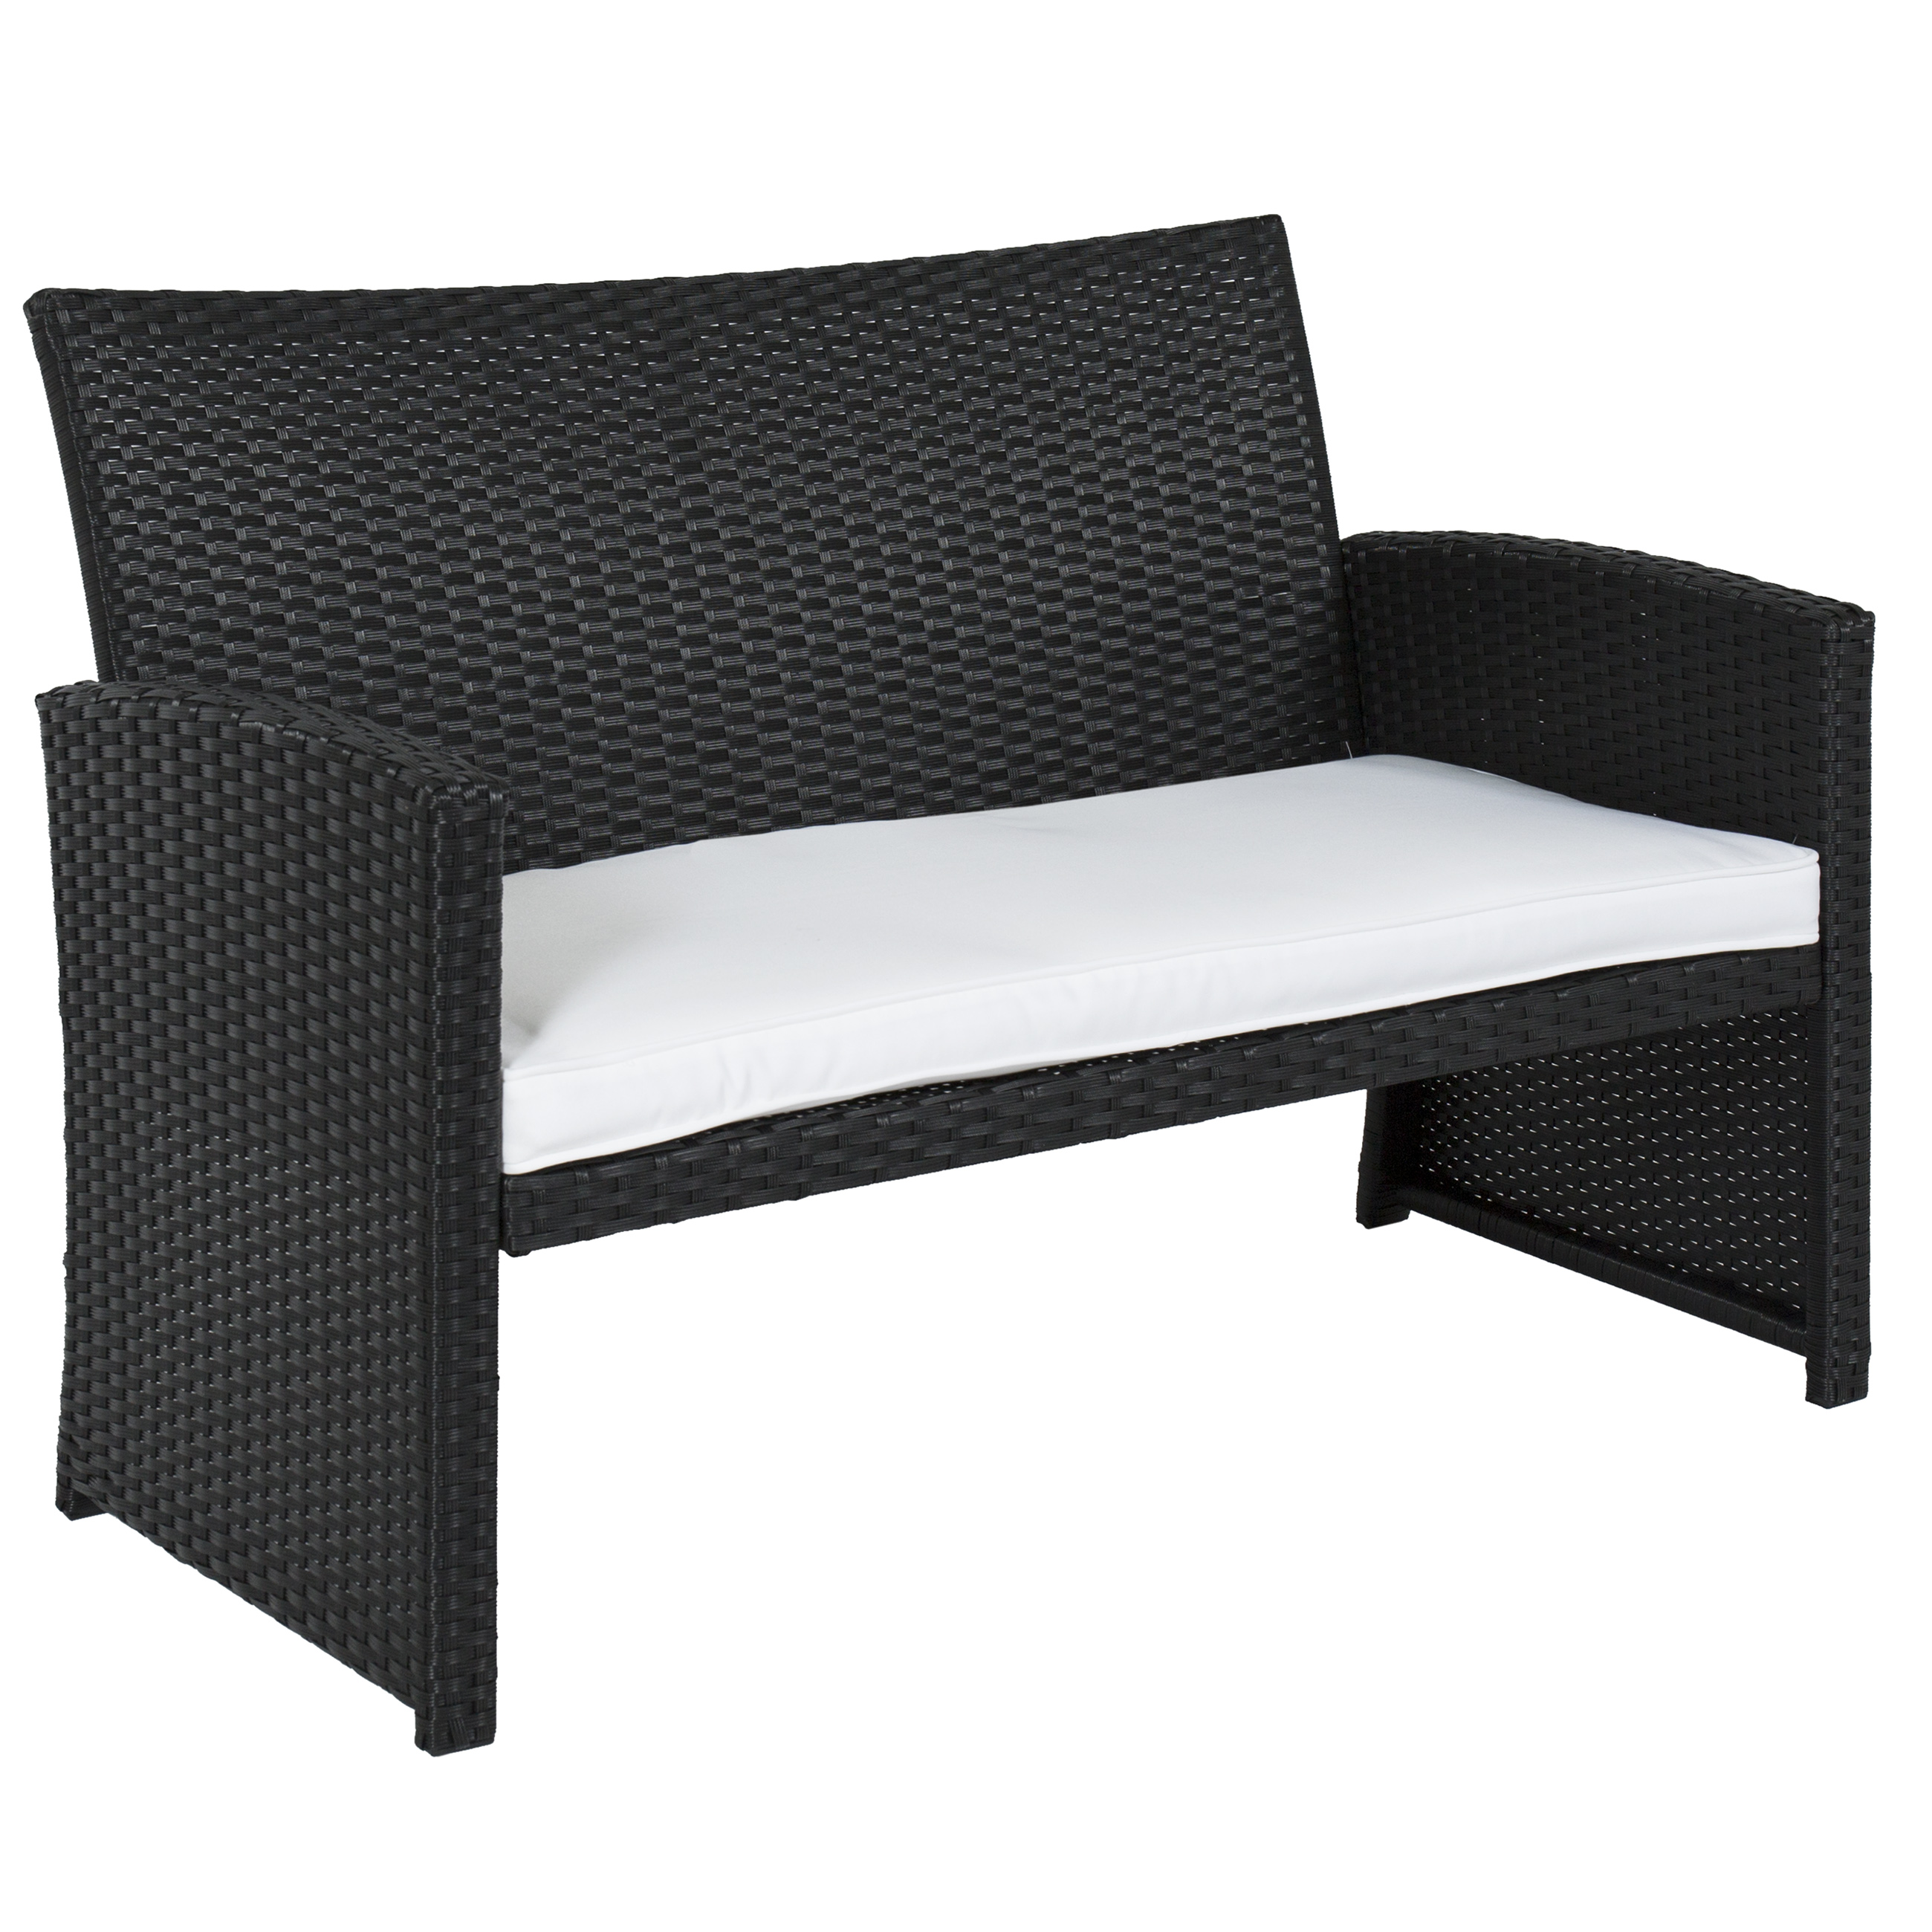 Best Choice Products Outdoor Garden Patio Cushioned Seat Black